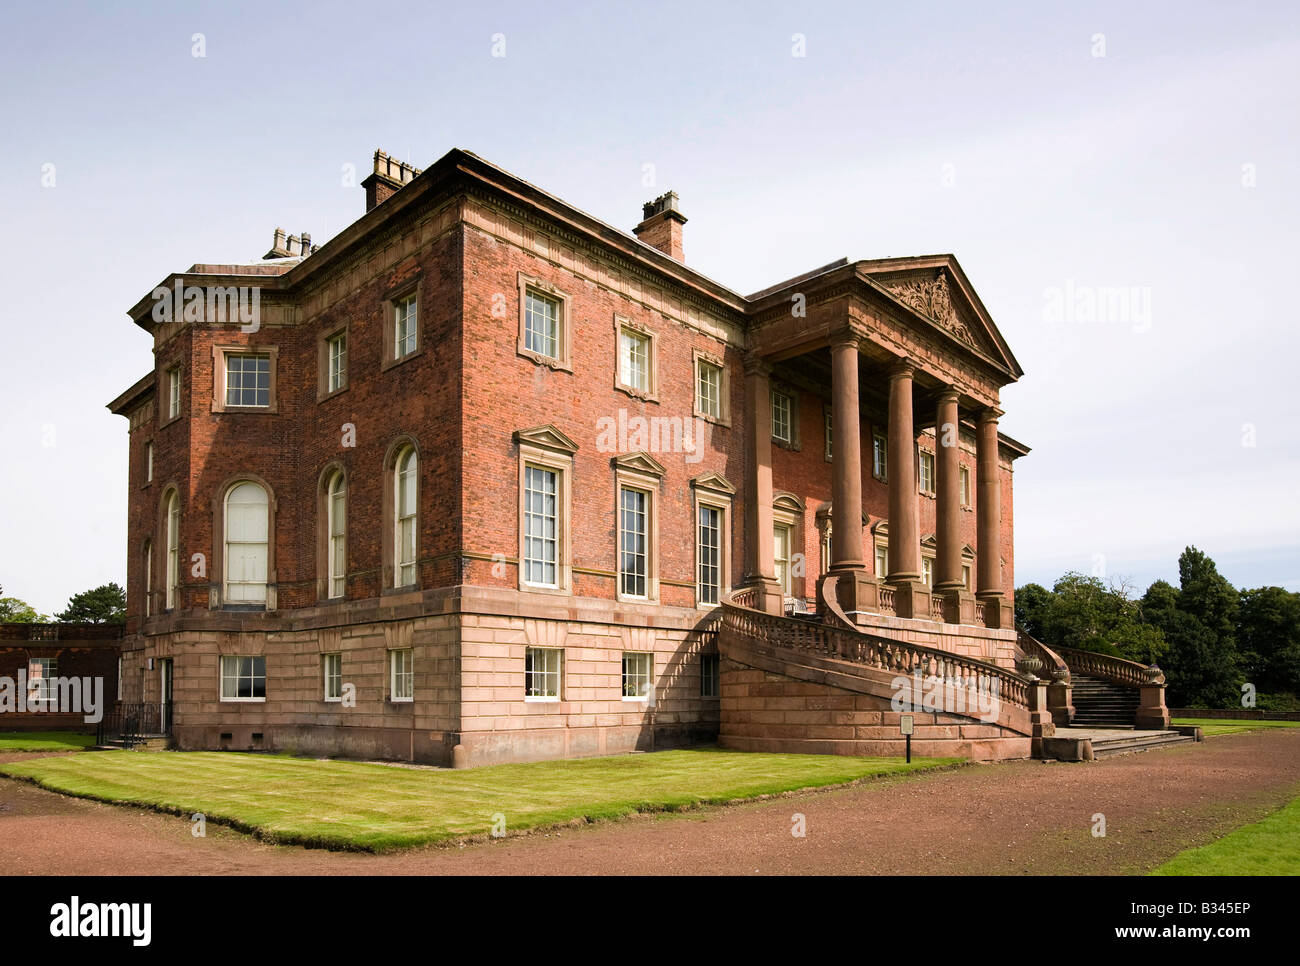 UK Cheshire Knutsford Tabley House 19th csntury mansion designd by John Carr of York 1769 Stock Photo